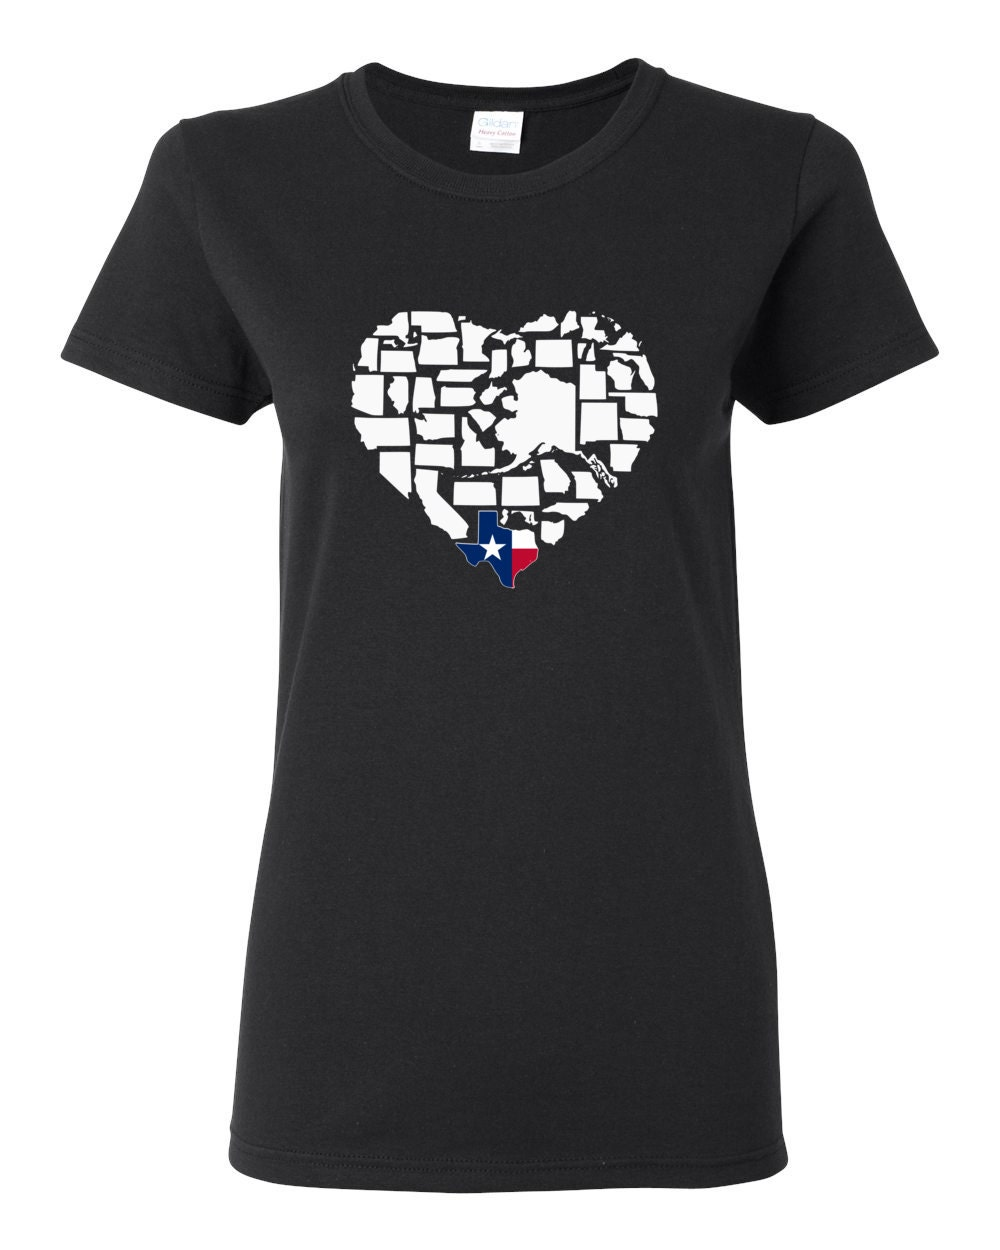 Texas T-shirt - Deep In The Heart Is Texas Womens My State Texas T-shirt